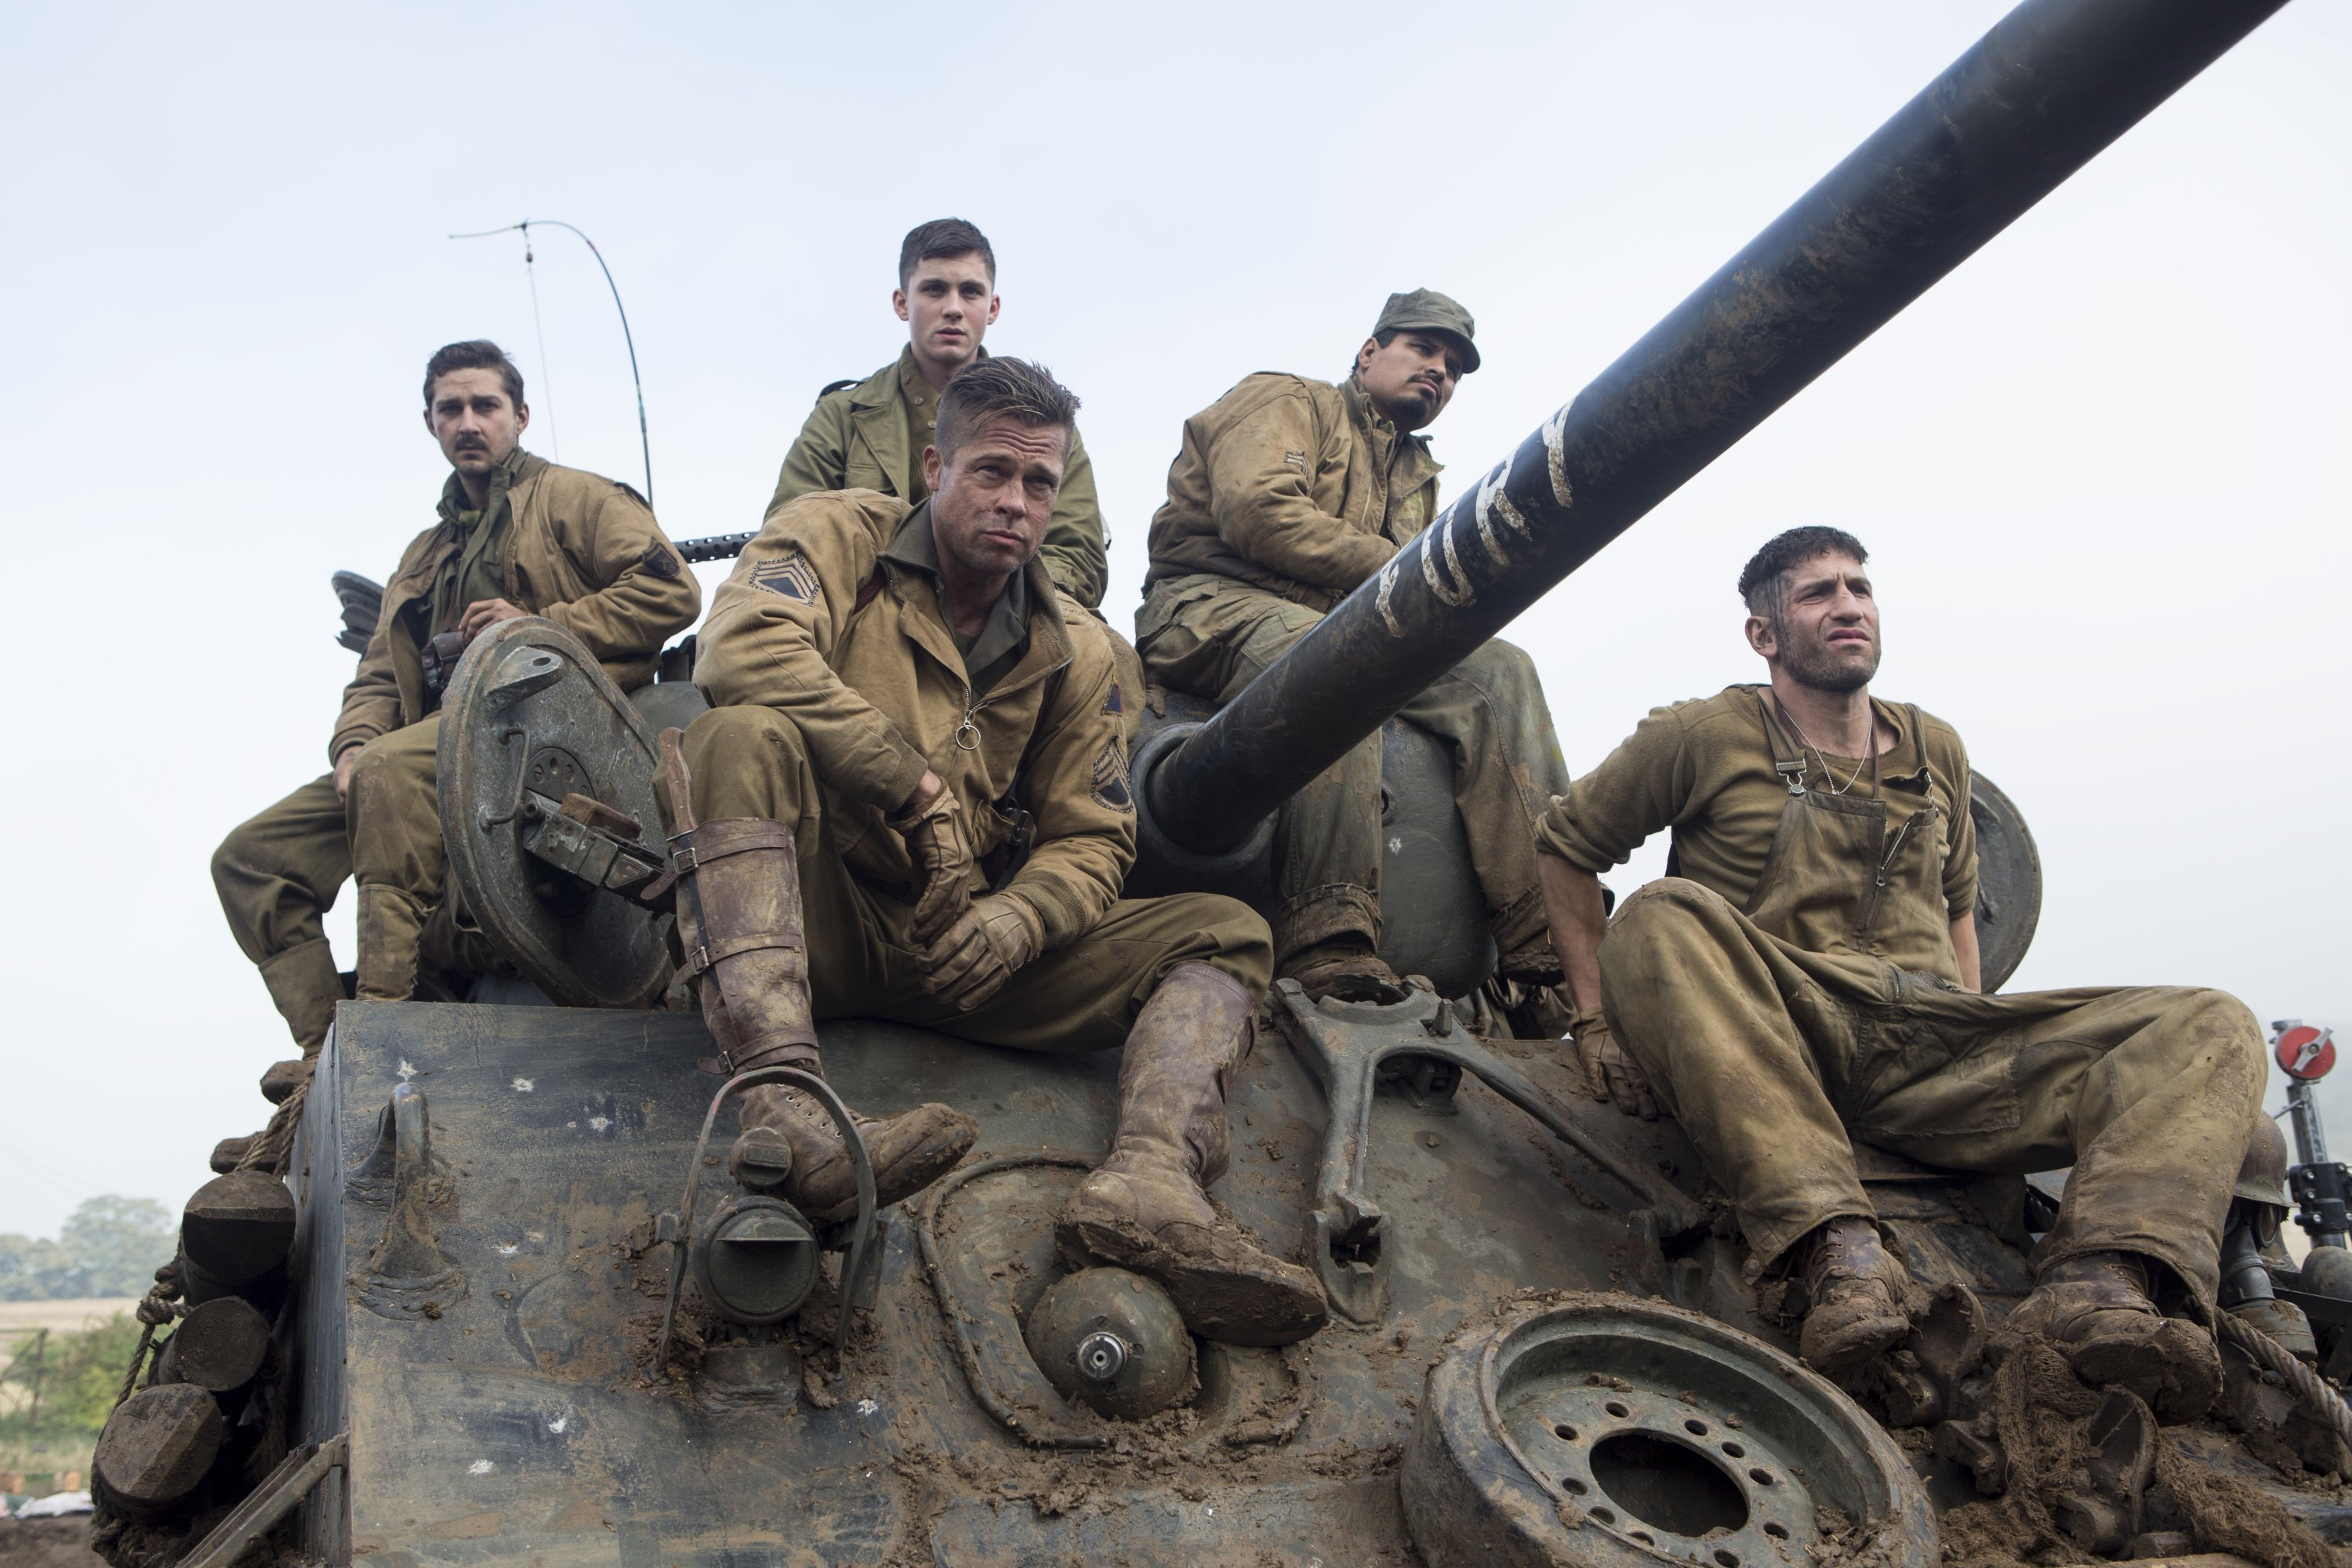 Sex, Leins & Videotape #196. Tom Leins reviews Fury, Dying of the Light and Kung Fu Killer.